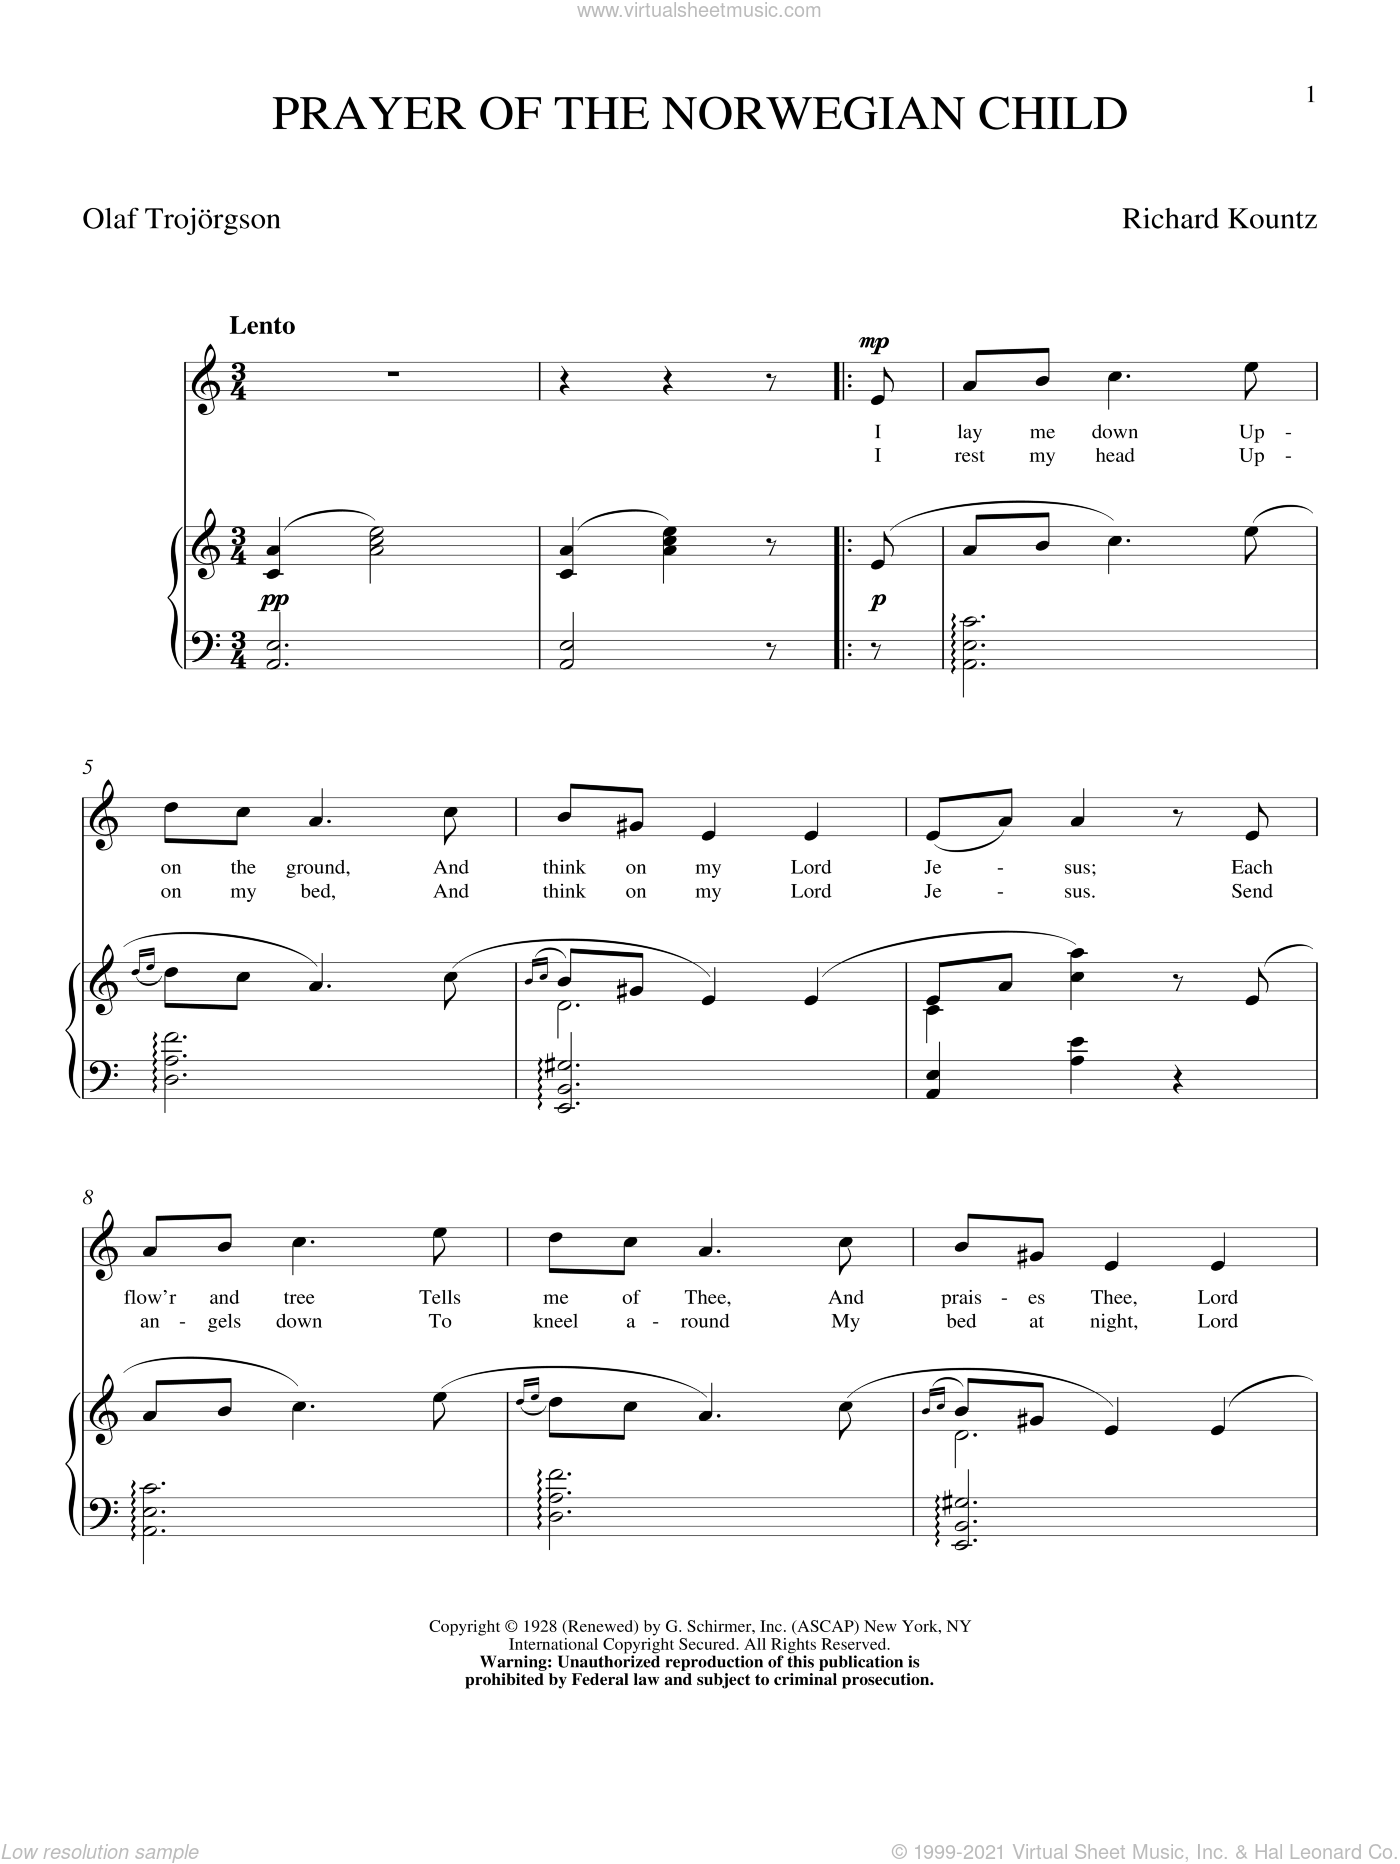 Prayer Of The Norwegian Child sheet music for voice and piano (High Voice) by Richard Kountz and Olaf Trojargson, intermediate skill level